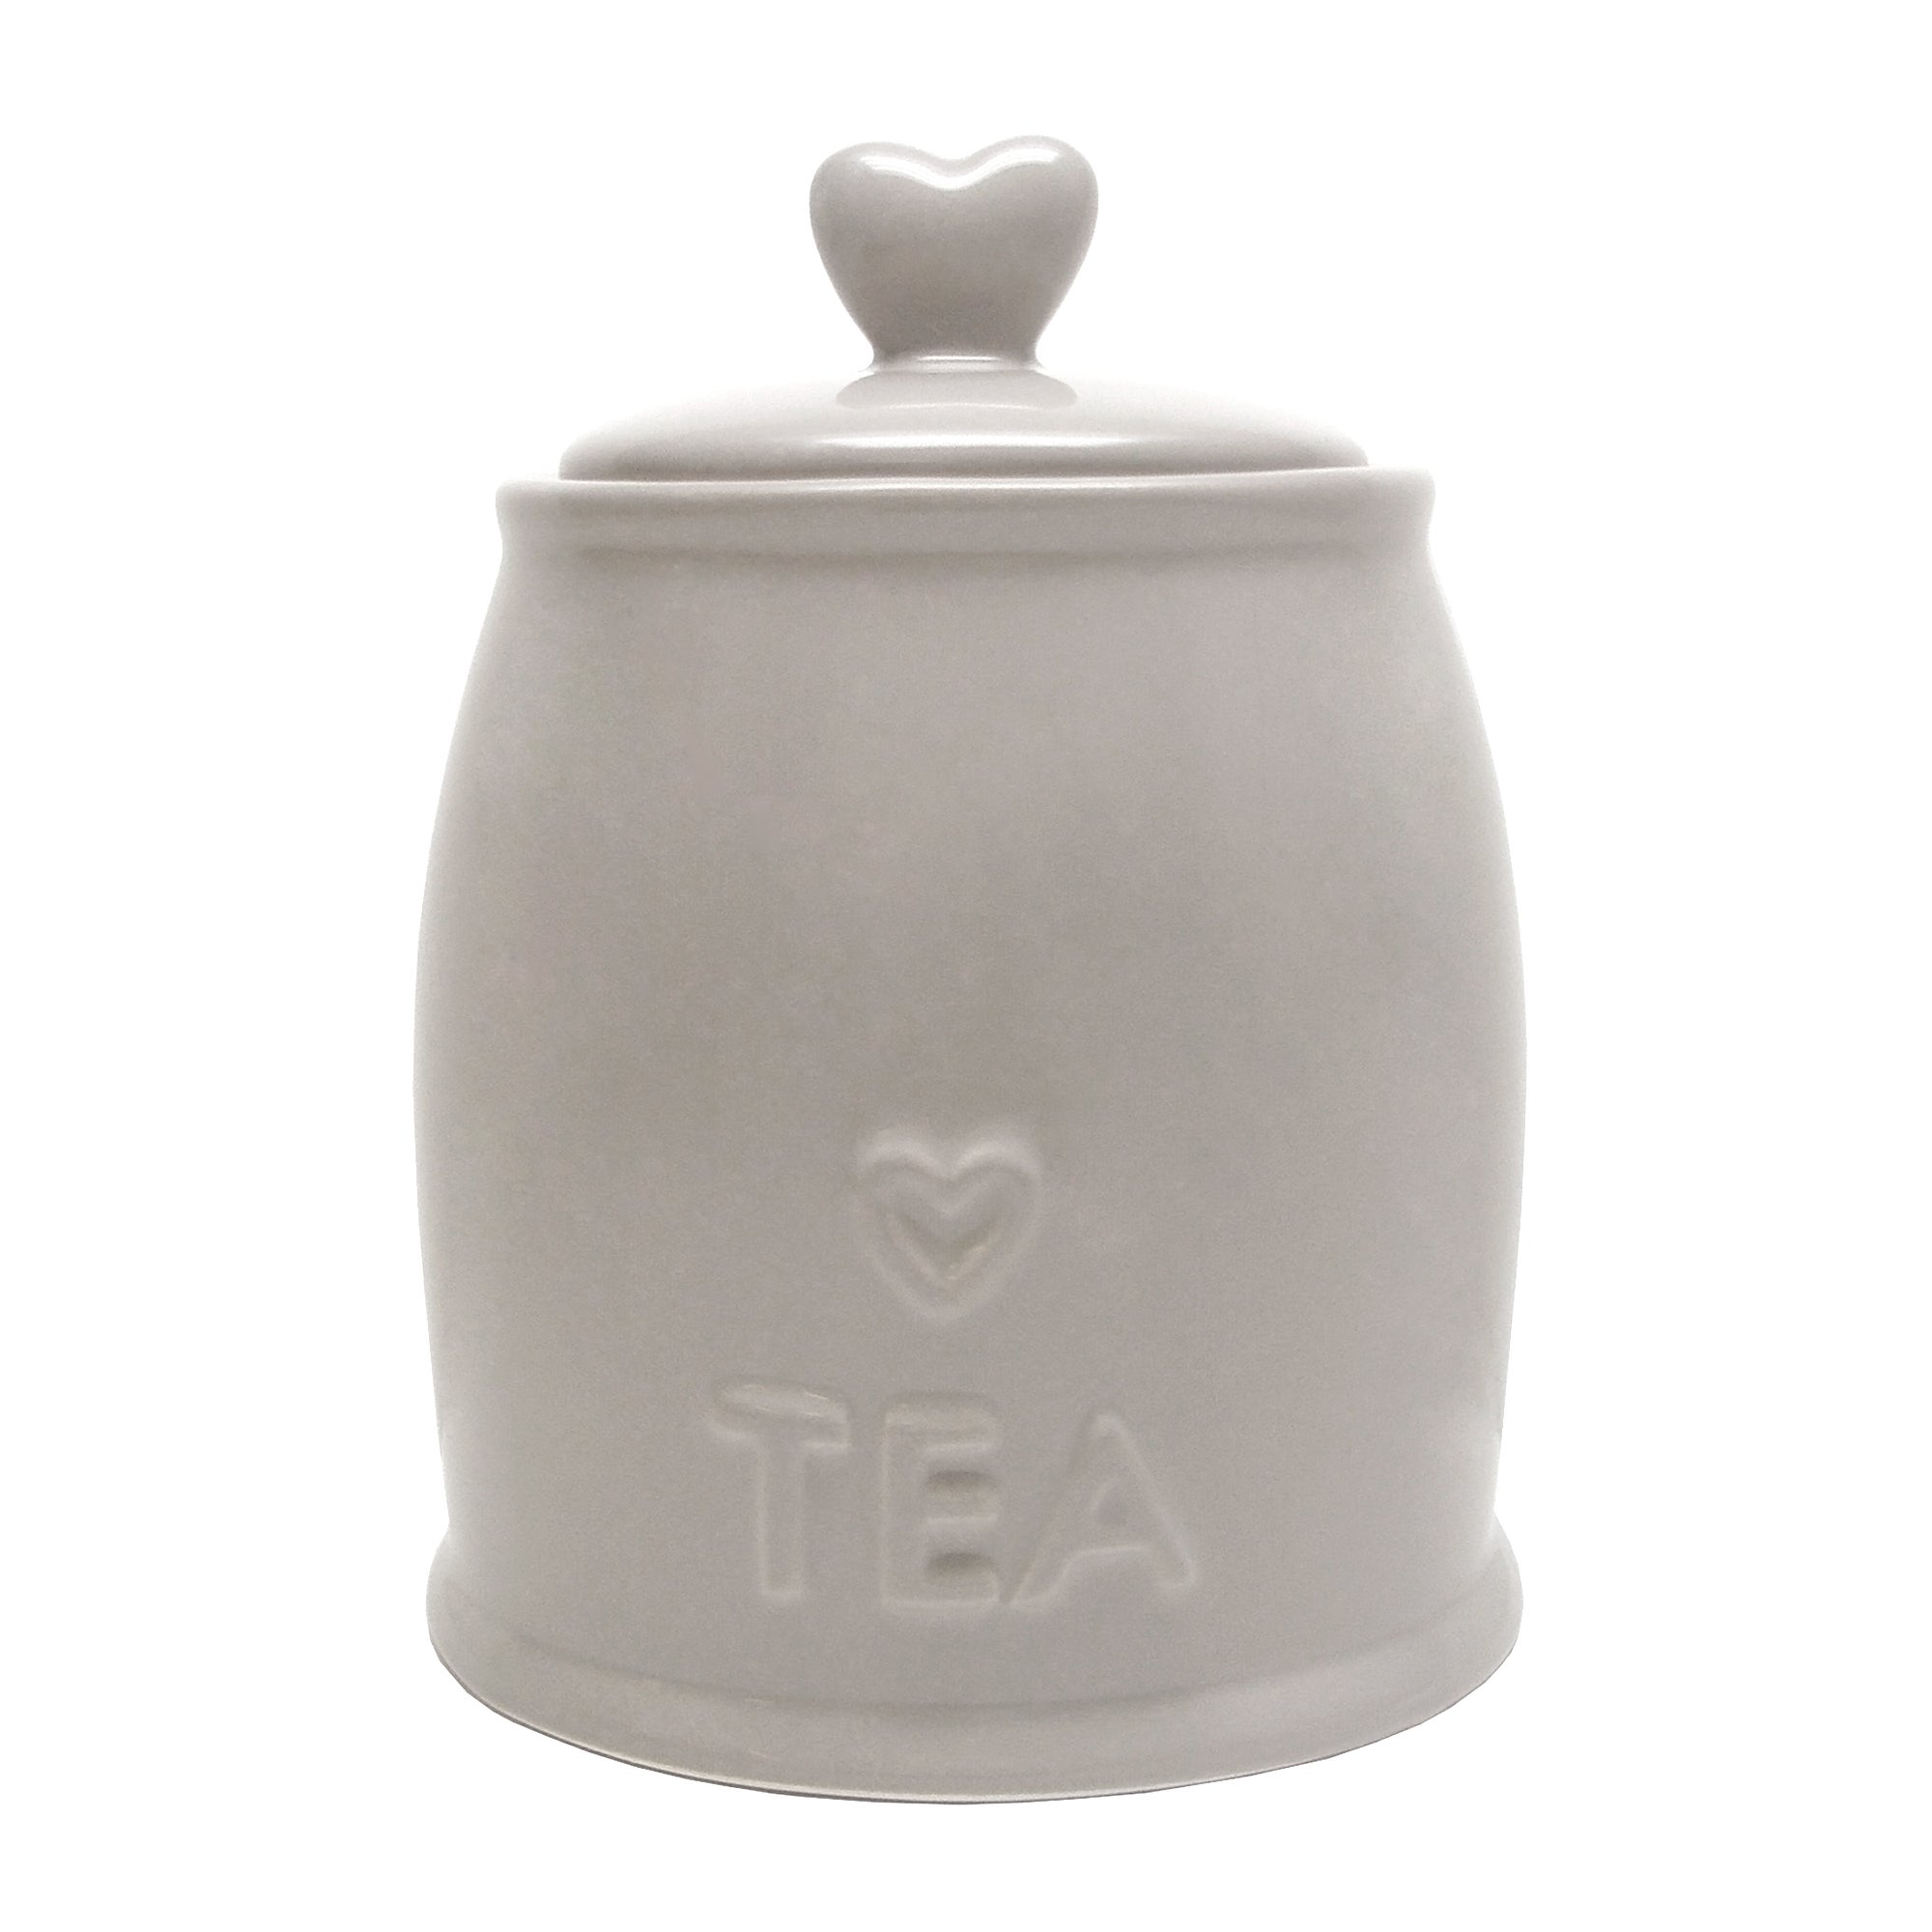 Country Taupe Heart Tea Storage Jar Taupe